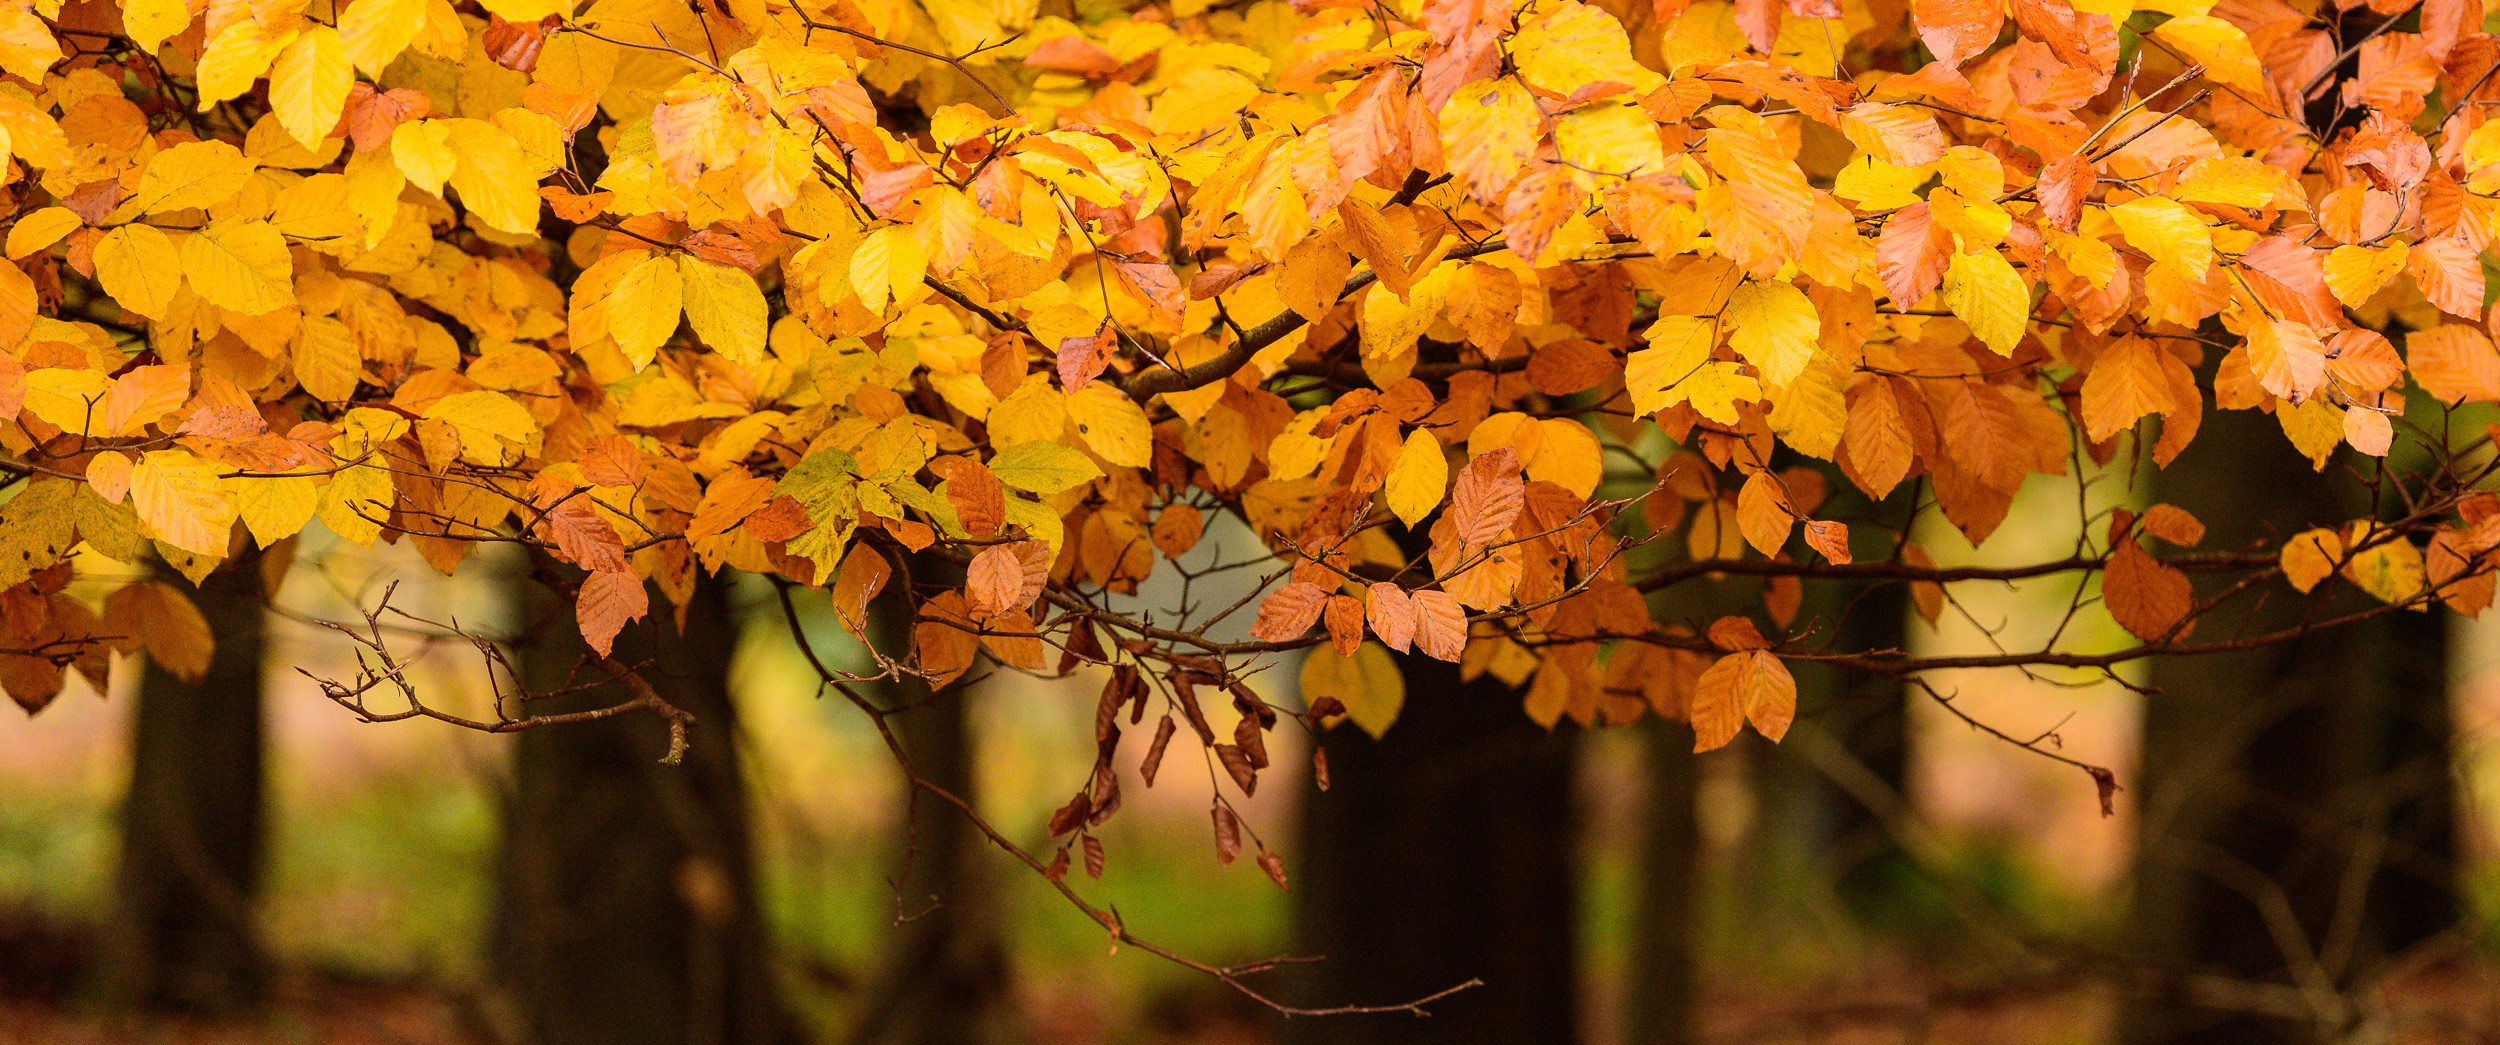 One of the few pictures I've made since my cataract operation. Glorious autumn colour from the King's Wood at Challock.